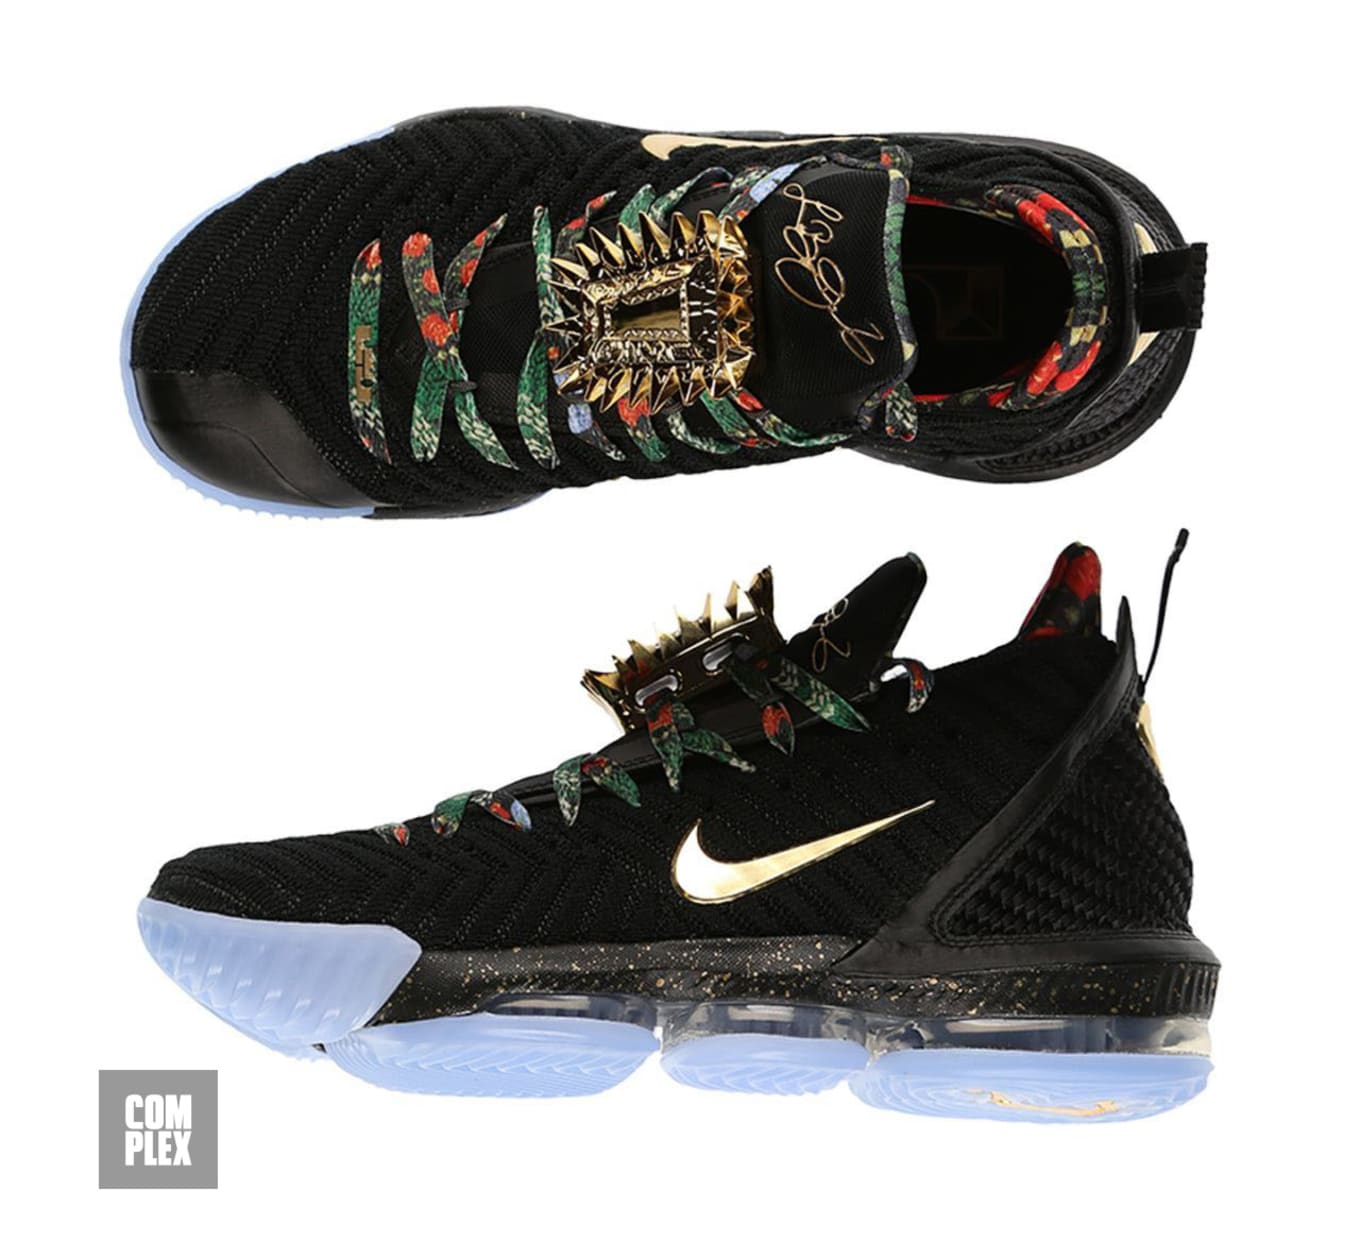 e2a1d4ef96a Nike LeBron 16 KC  Watch the Throne  Black Metallic Gold Rose Frost ...